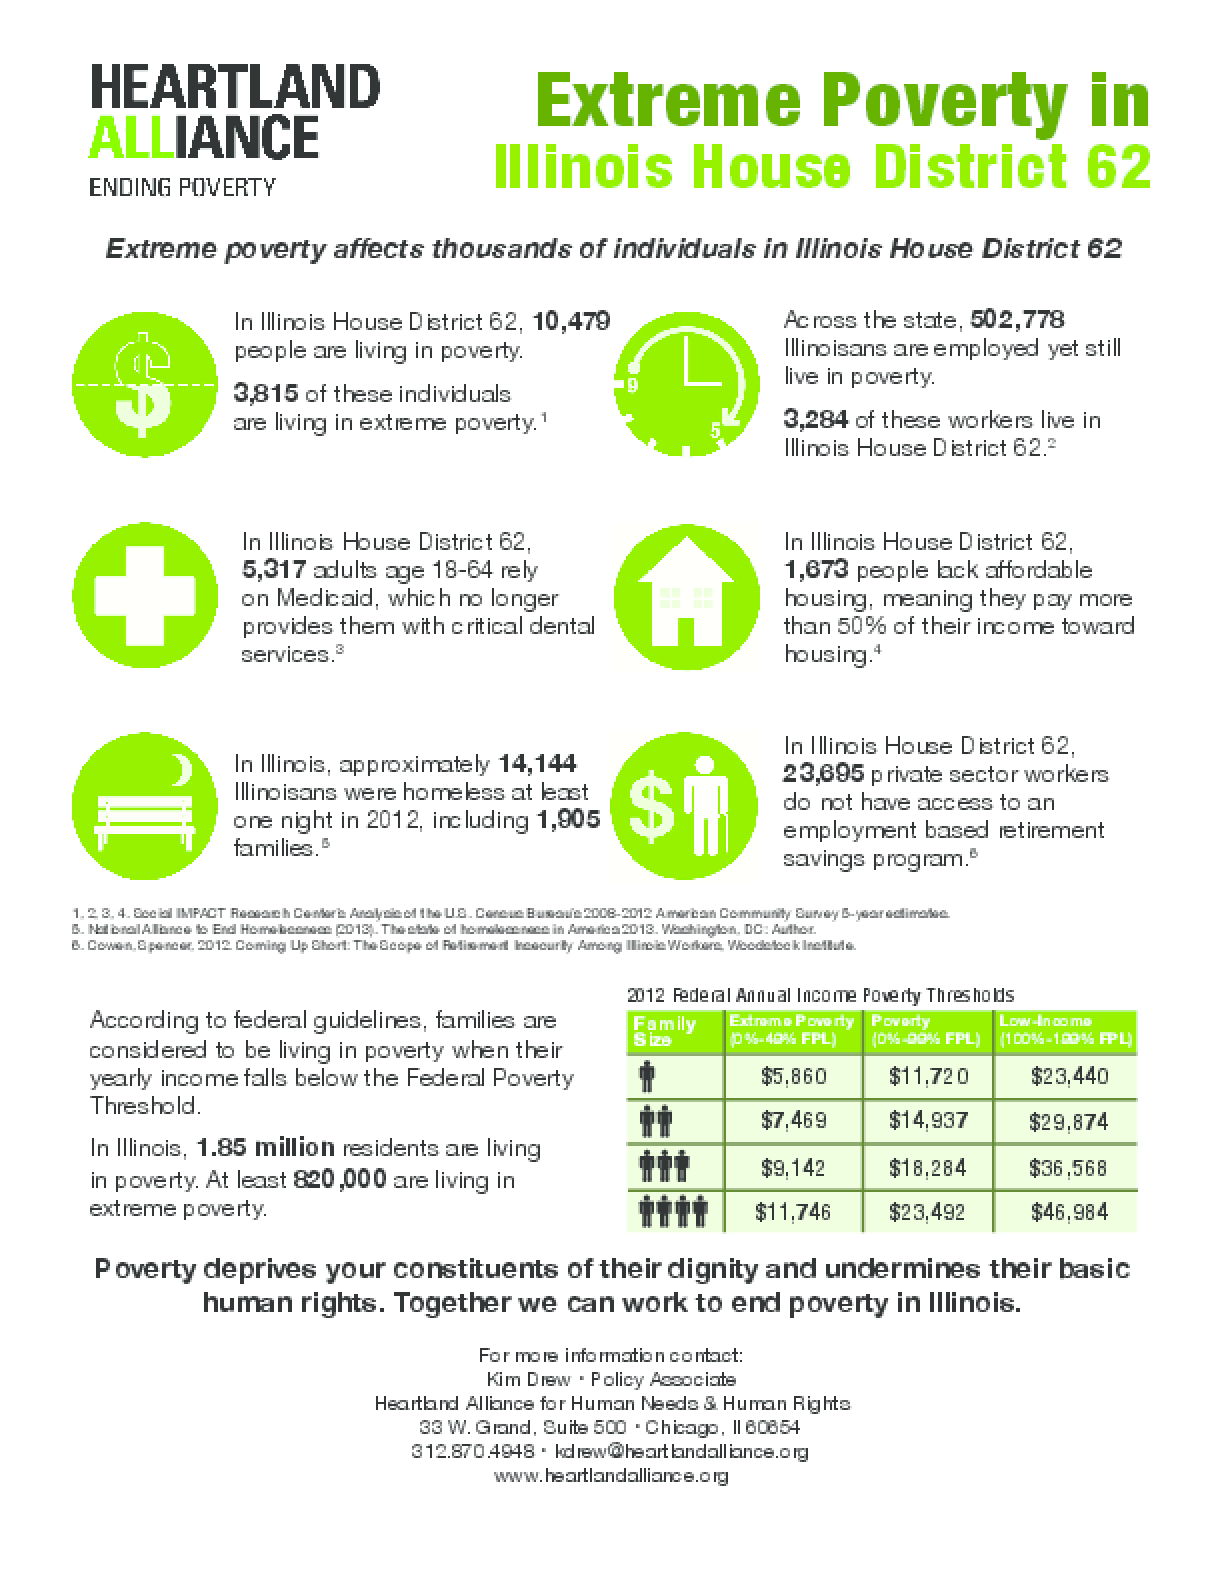 Poverty Fact Sheets for Illinois House District 62